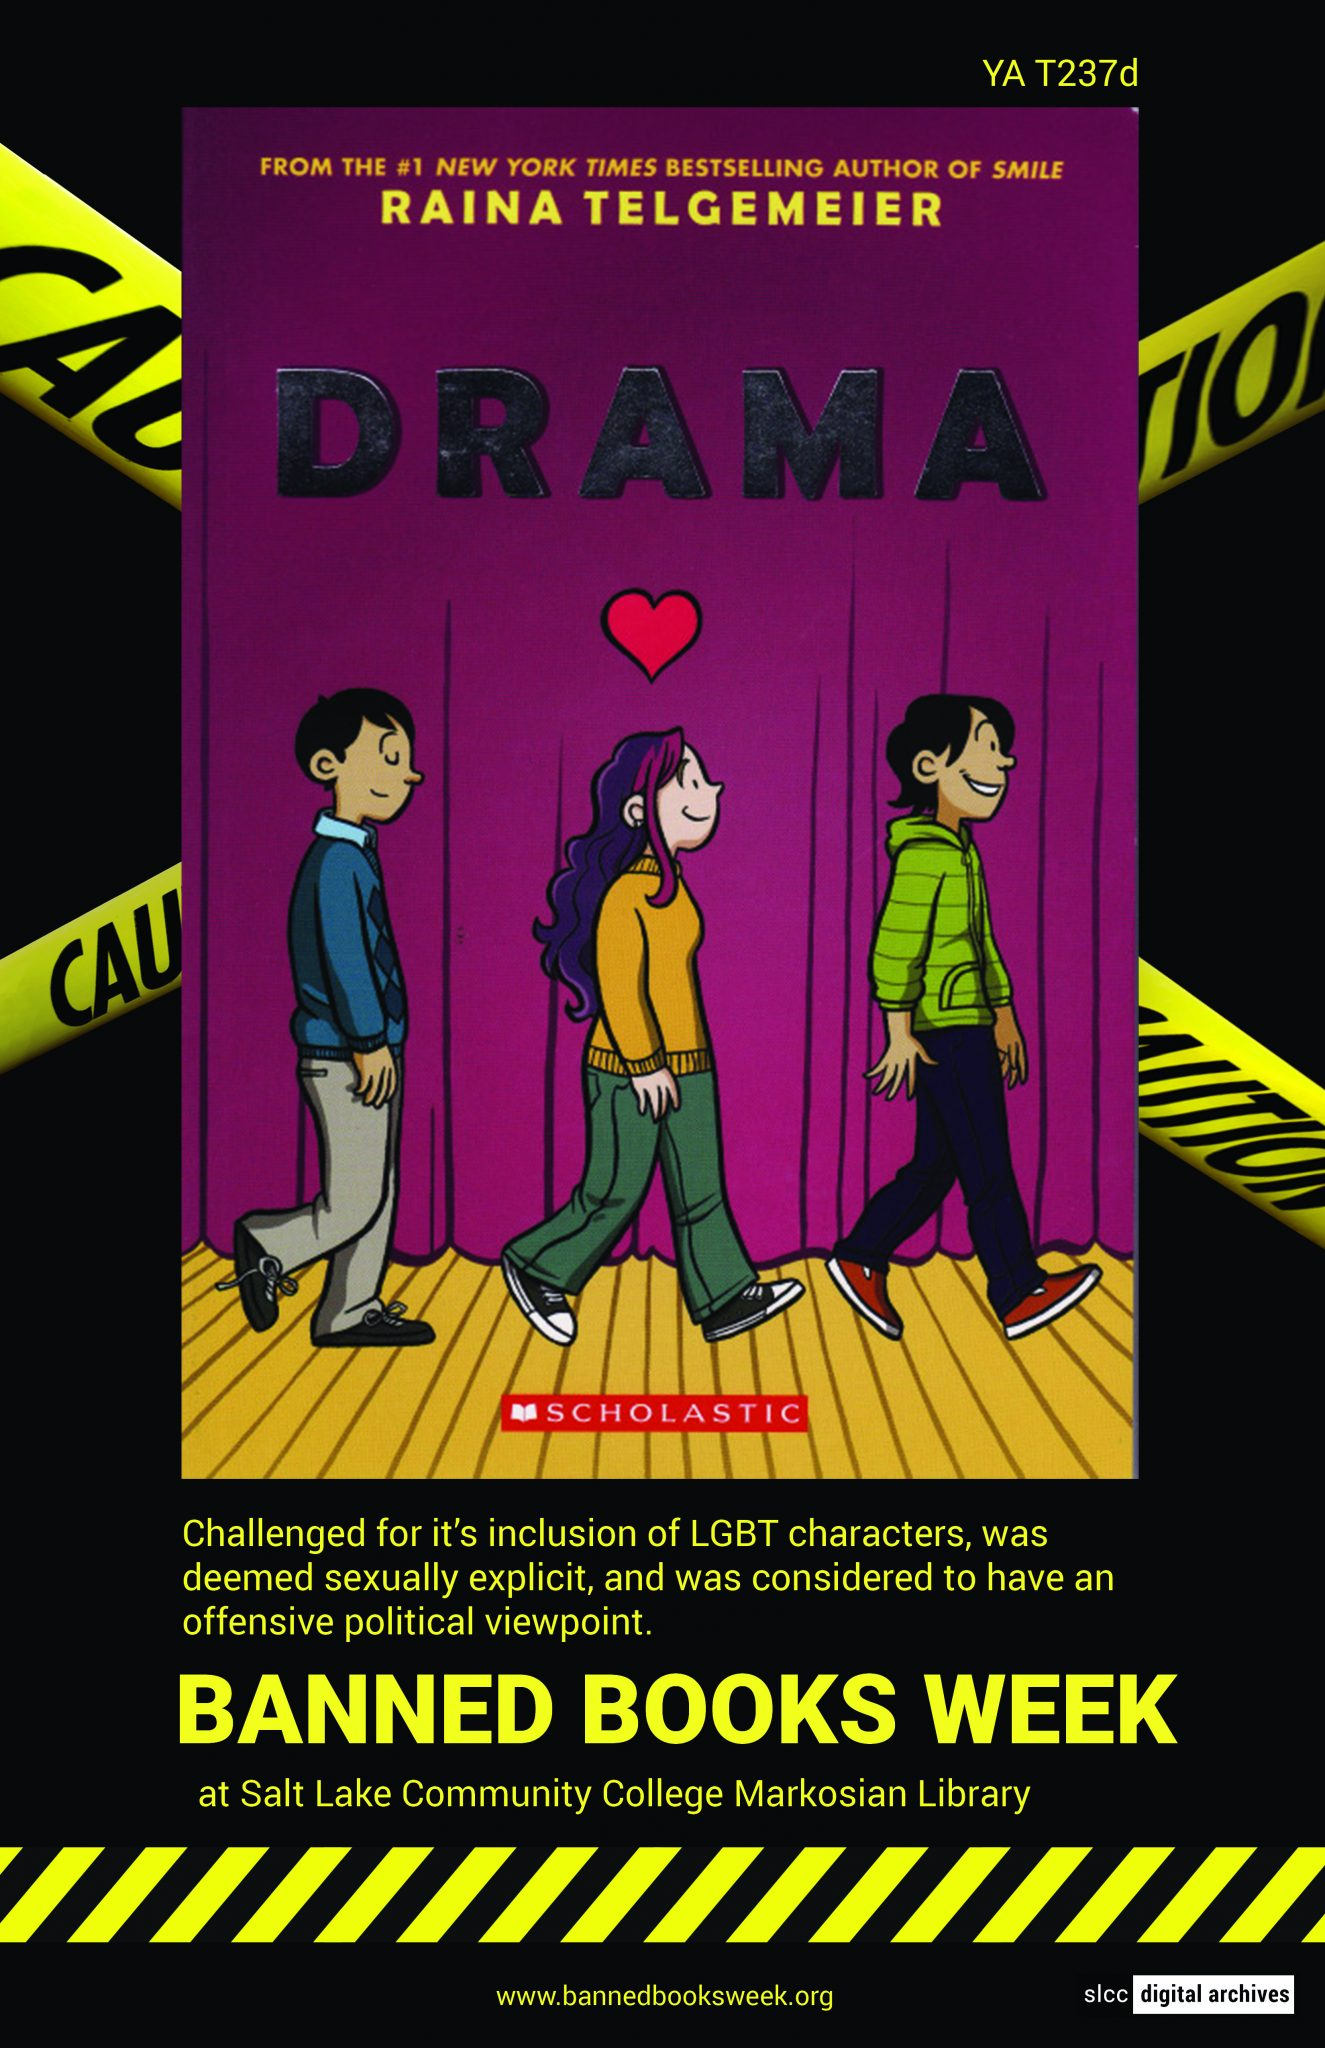 Banned Books Week Poster: Drama written and illustrated by Raina Telgemeier